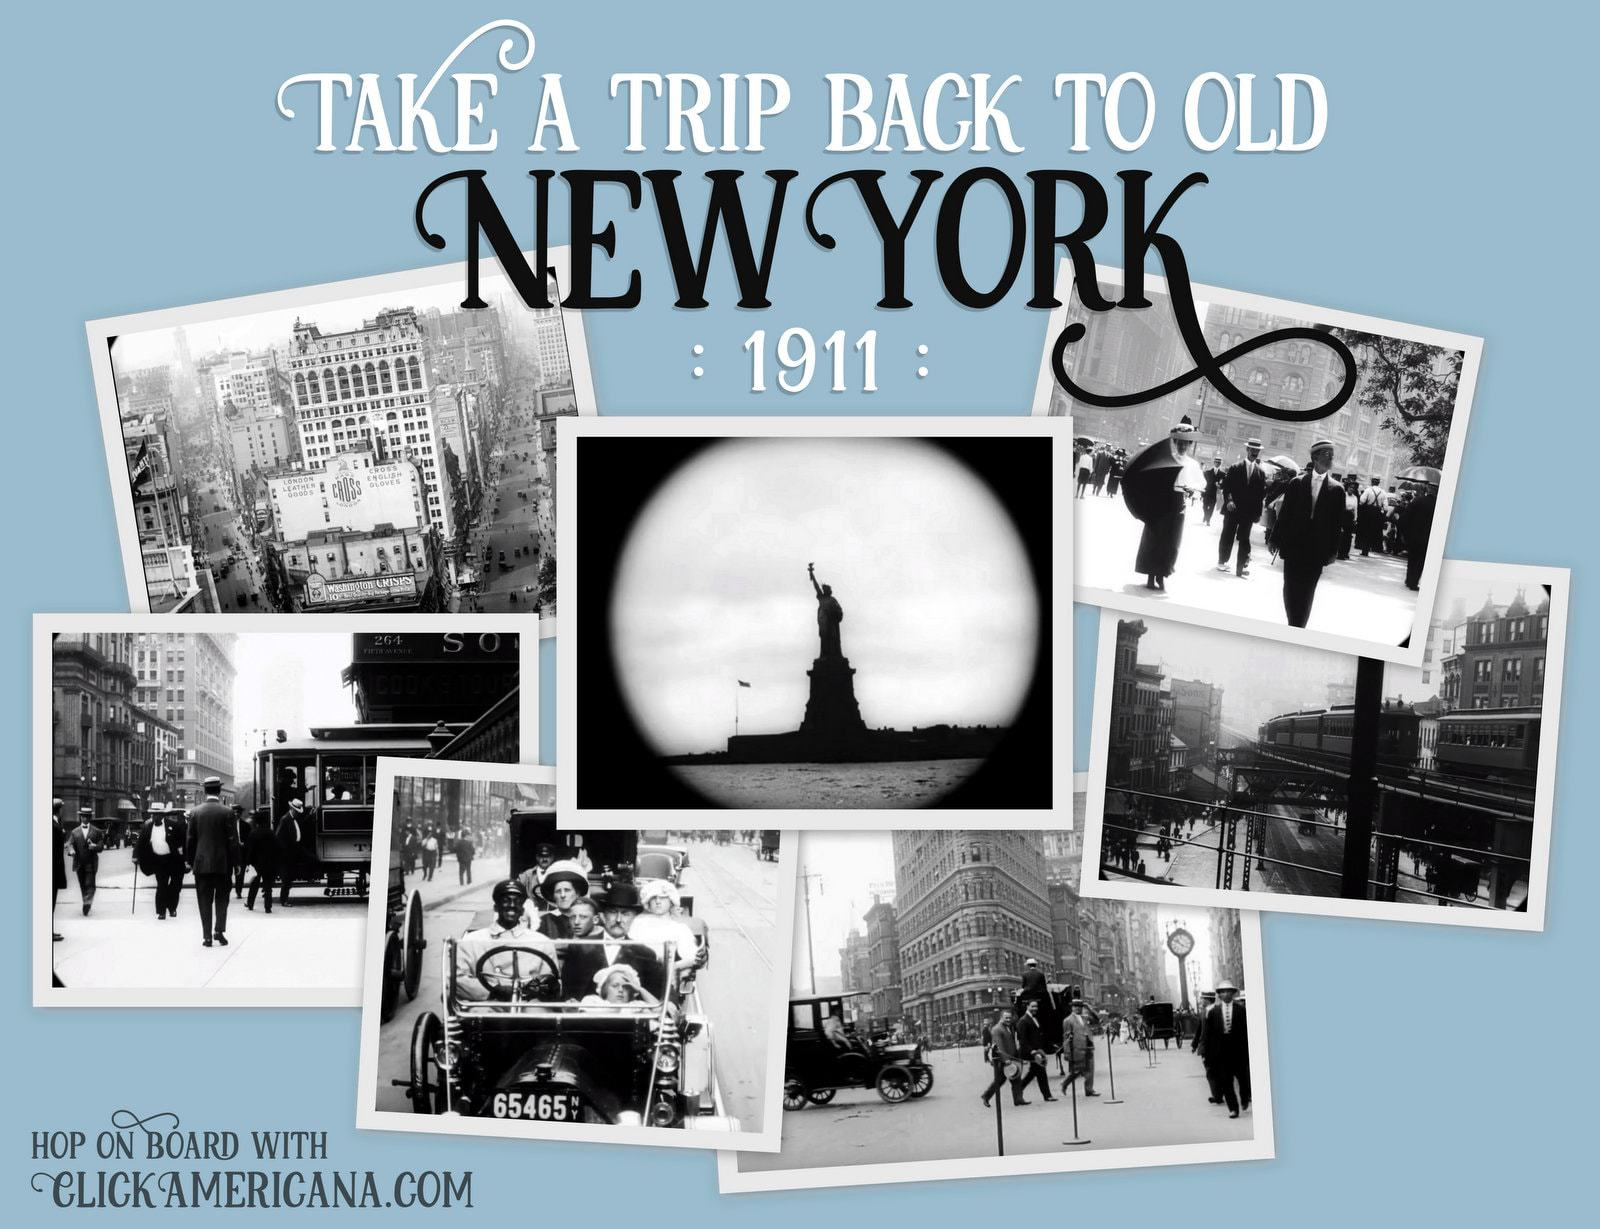 Old New York in 1911 - Film footage